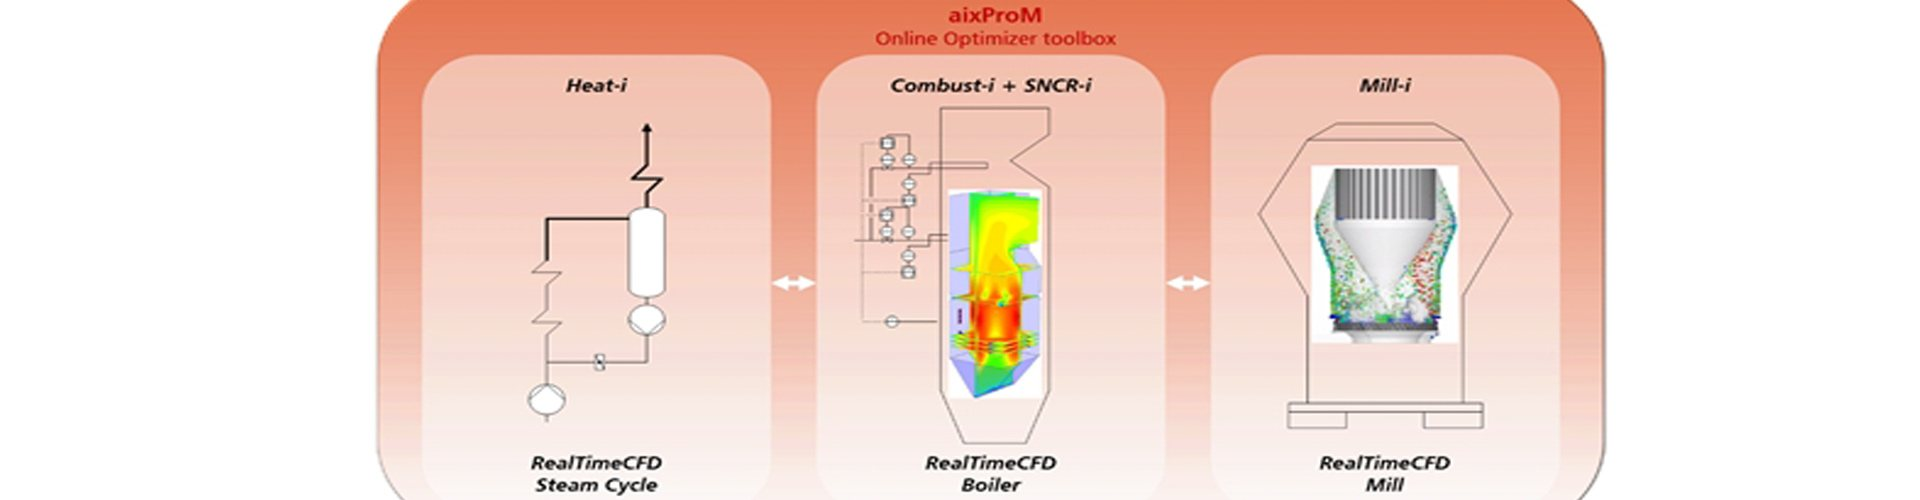 The picture shows applications of the aixProM RealTime CFD technology